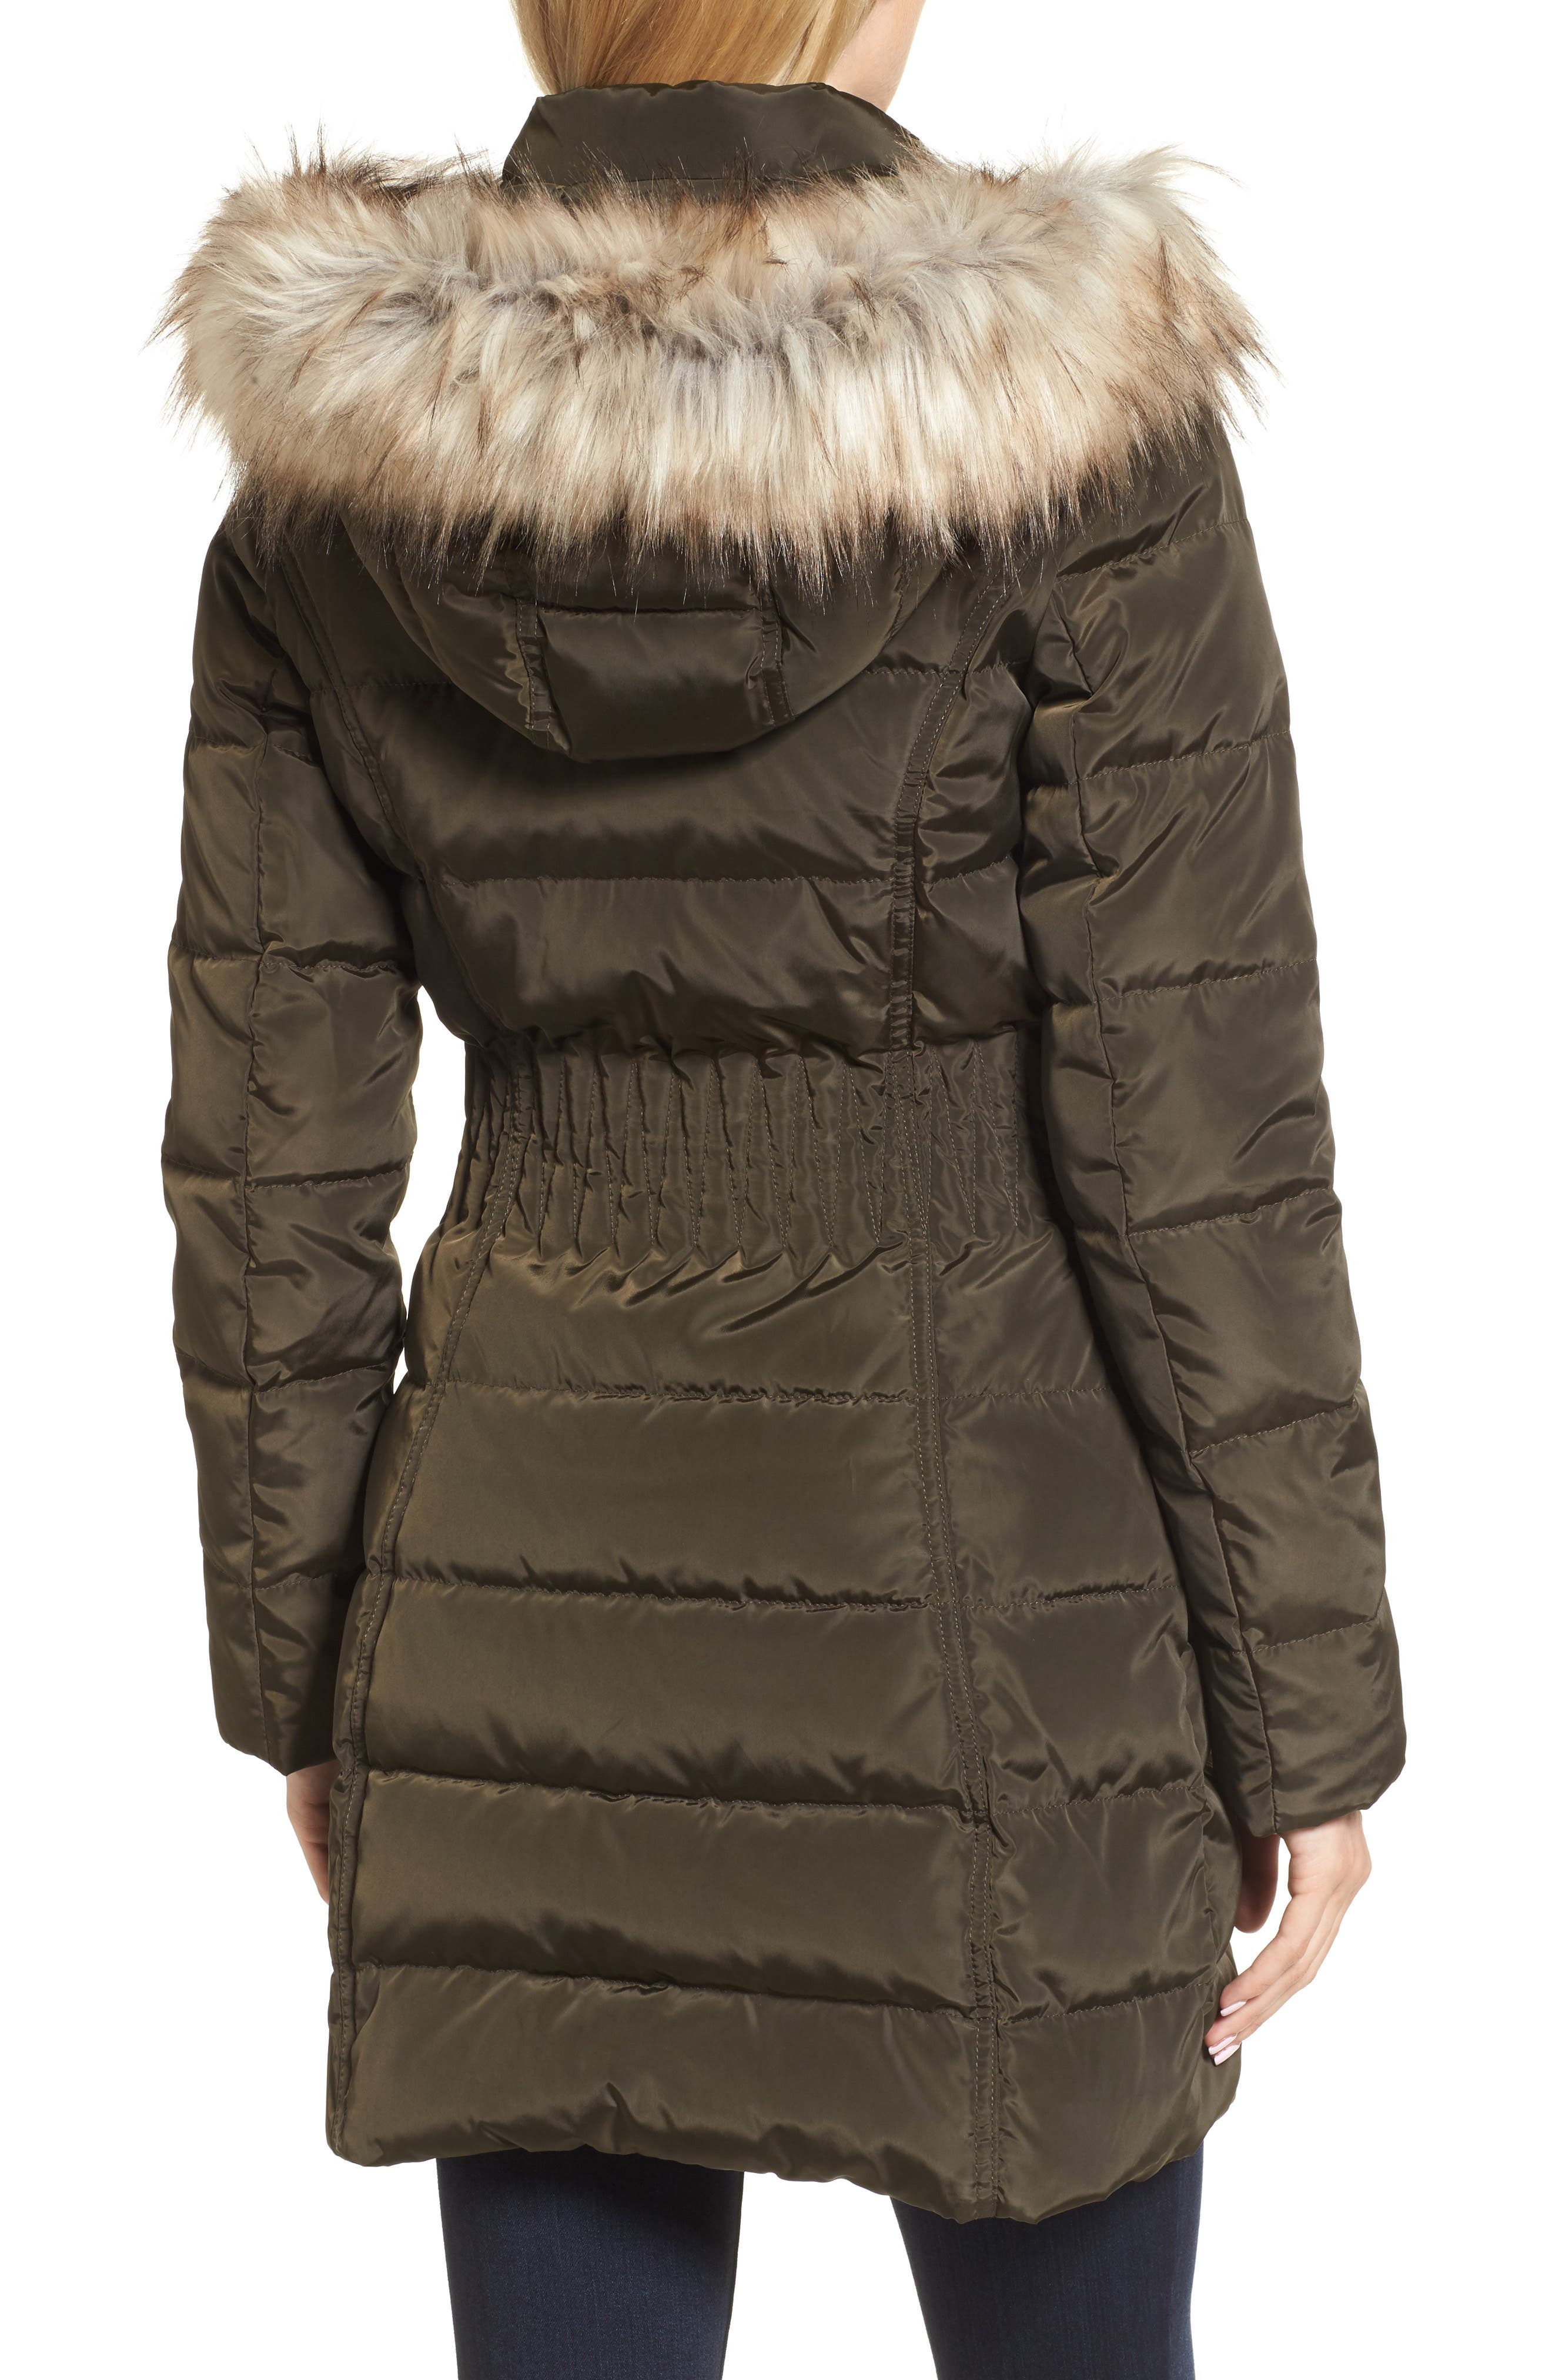 Alternate Image 2  - Laundry by Shelli Segal Hooded Quilted Jacket with Faux Fur Trim